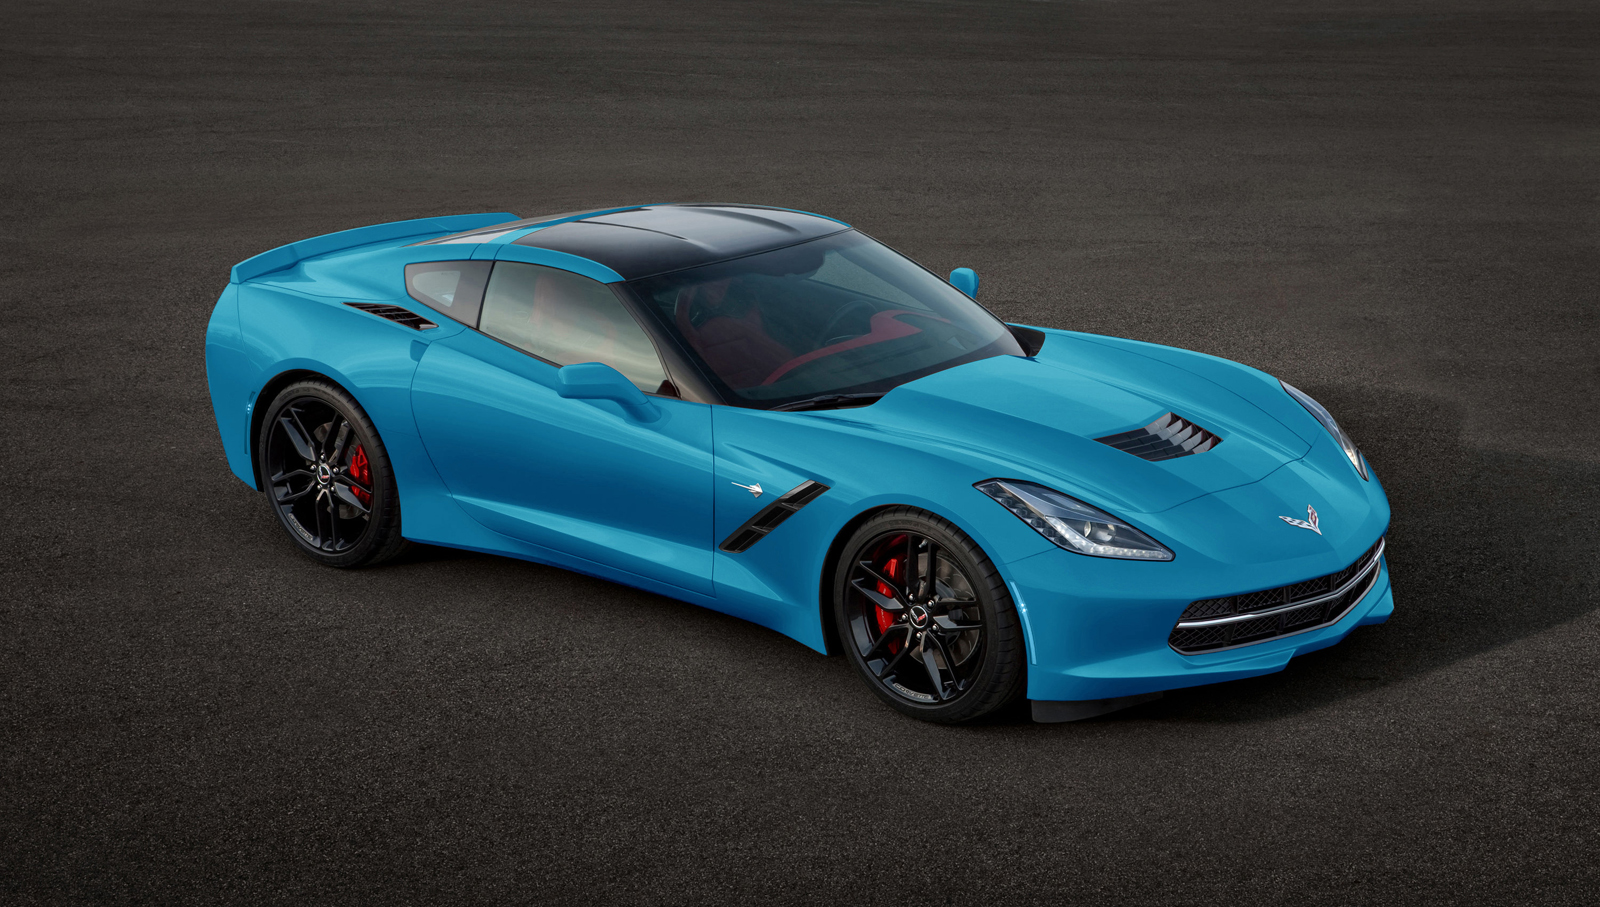 2014 corvette stingray blue Chevrolet Launches 2014 Corvette Stingray Online Configurator - Click